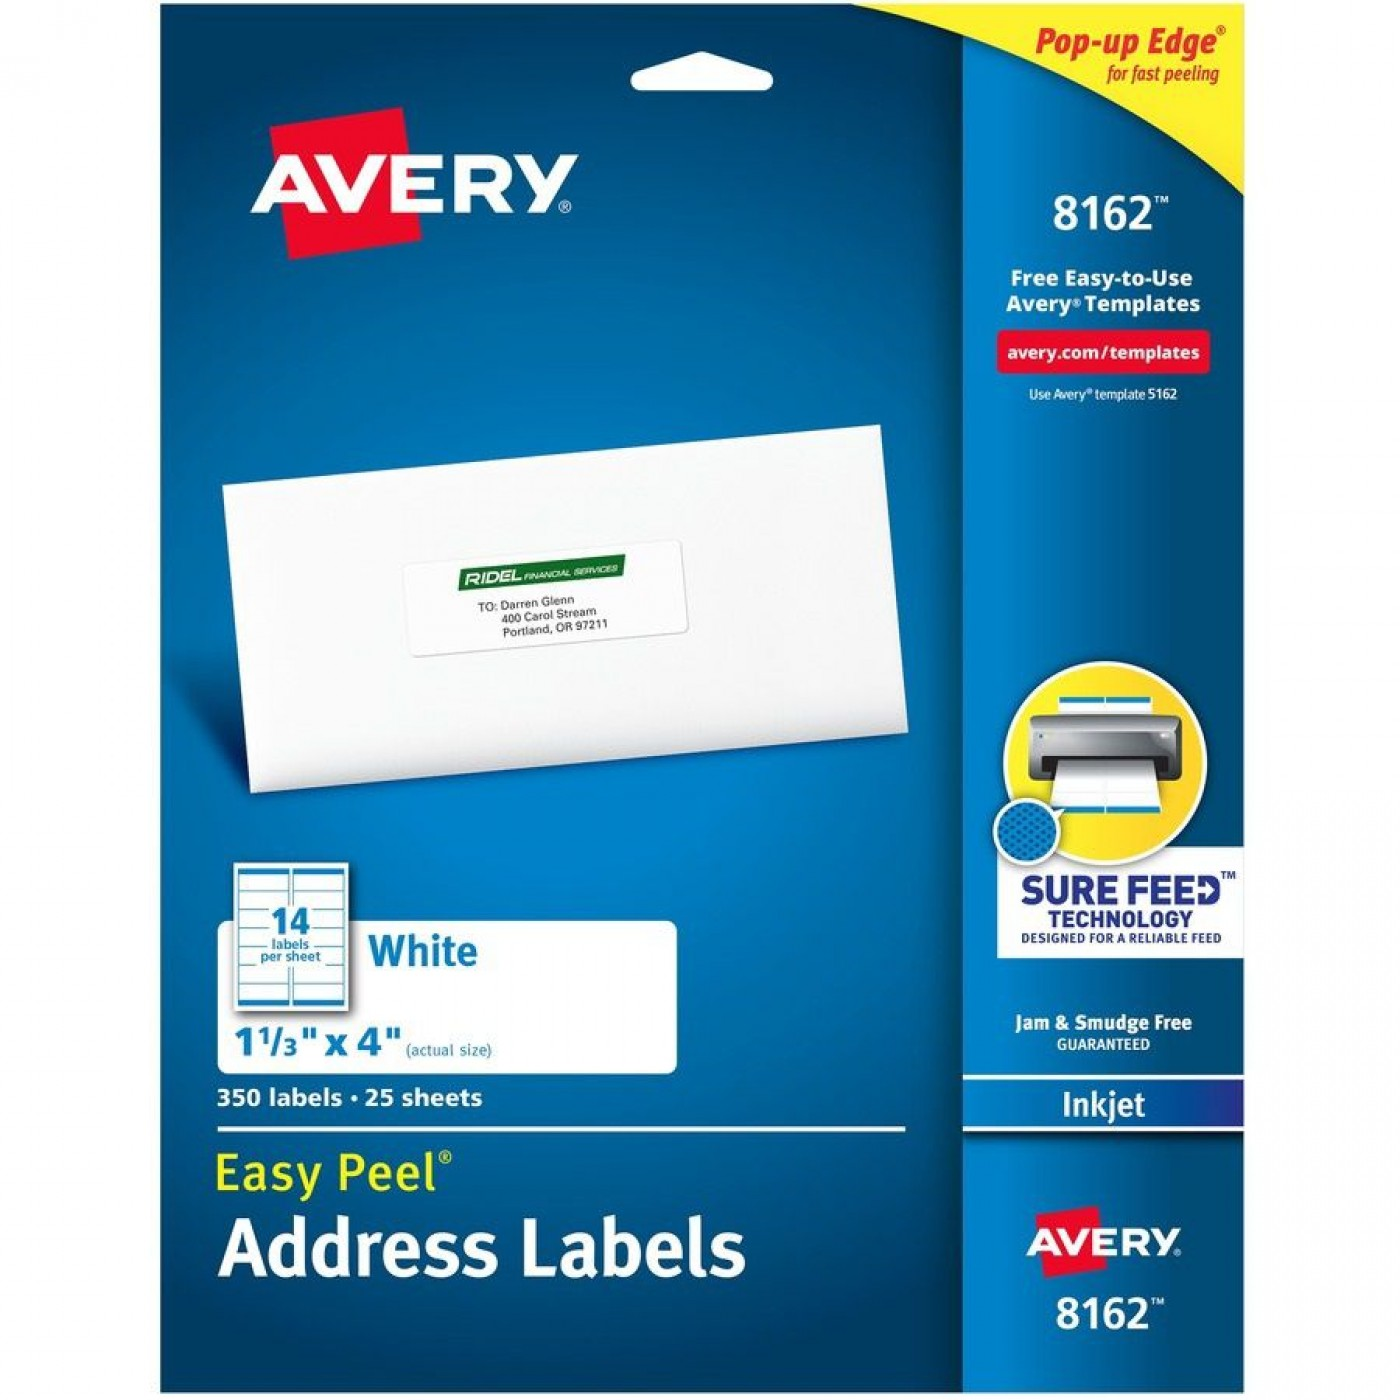 007 Remarkable Free Avery Addres Label Template For Mac Idea  51601400